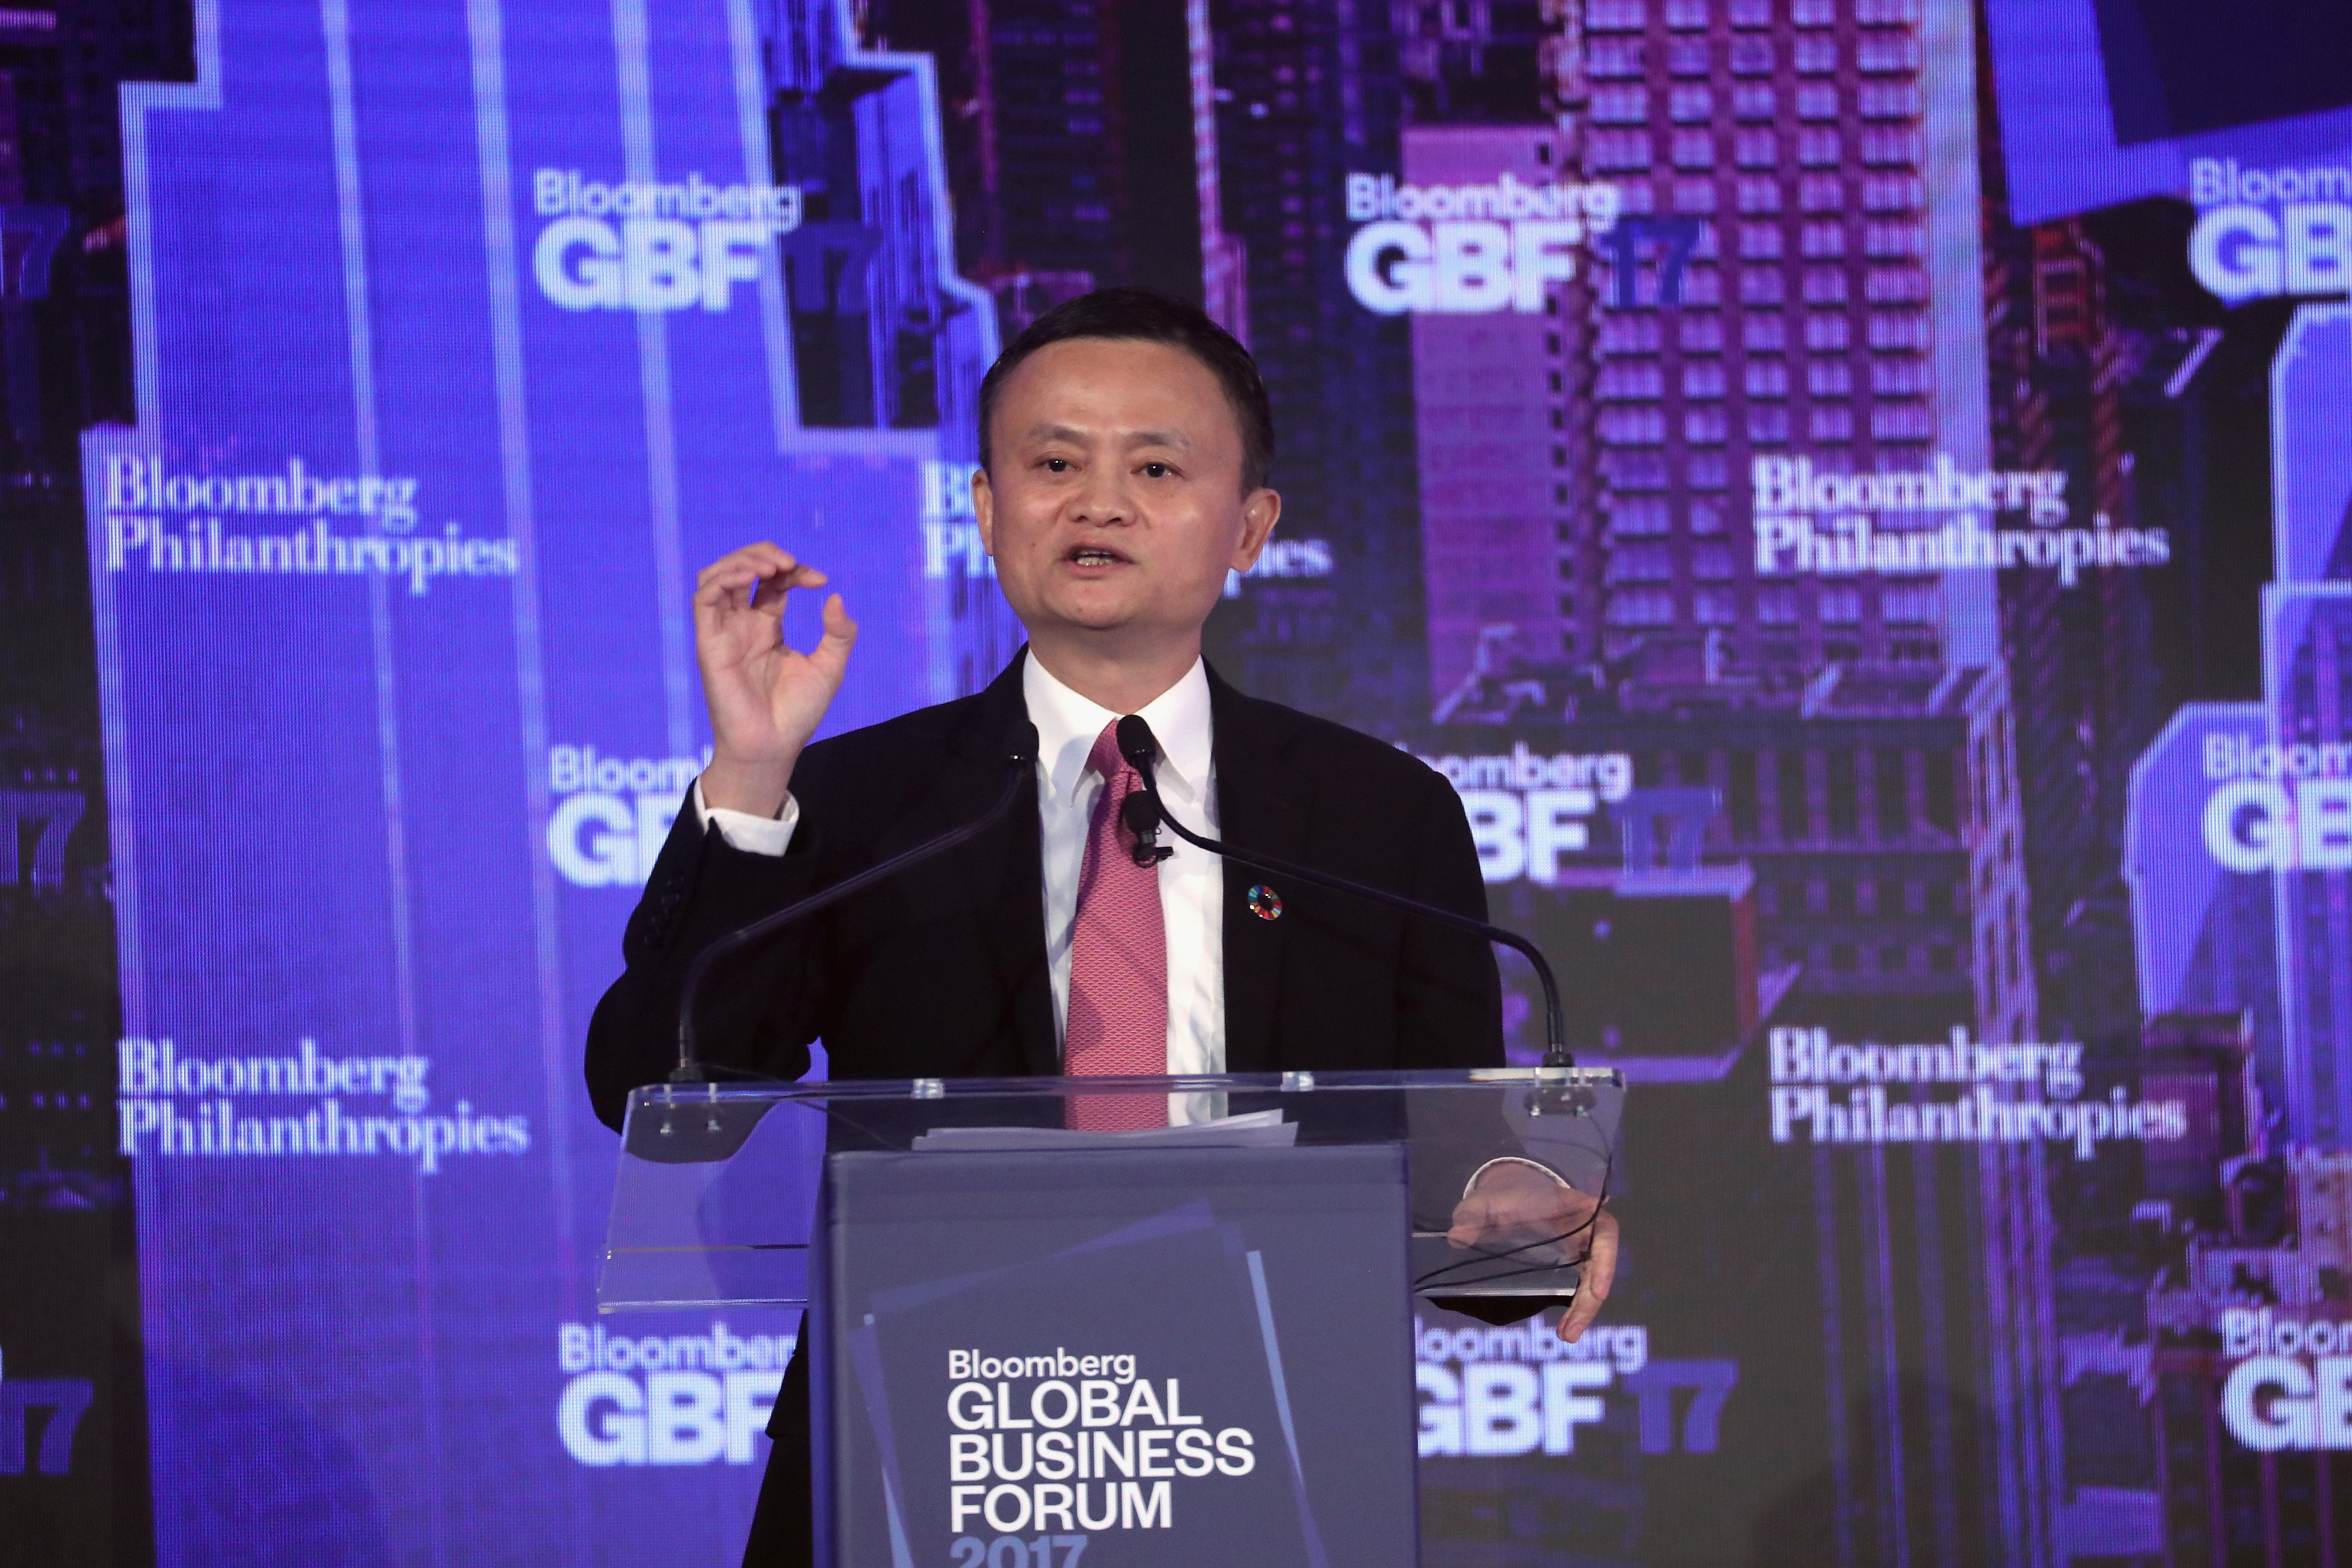 Jack Ma delivering a speech at the Bloomberg Global Business Forum in New York City | Photo: Getty Images